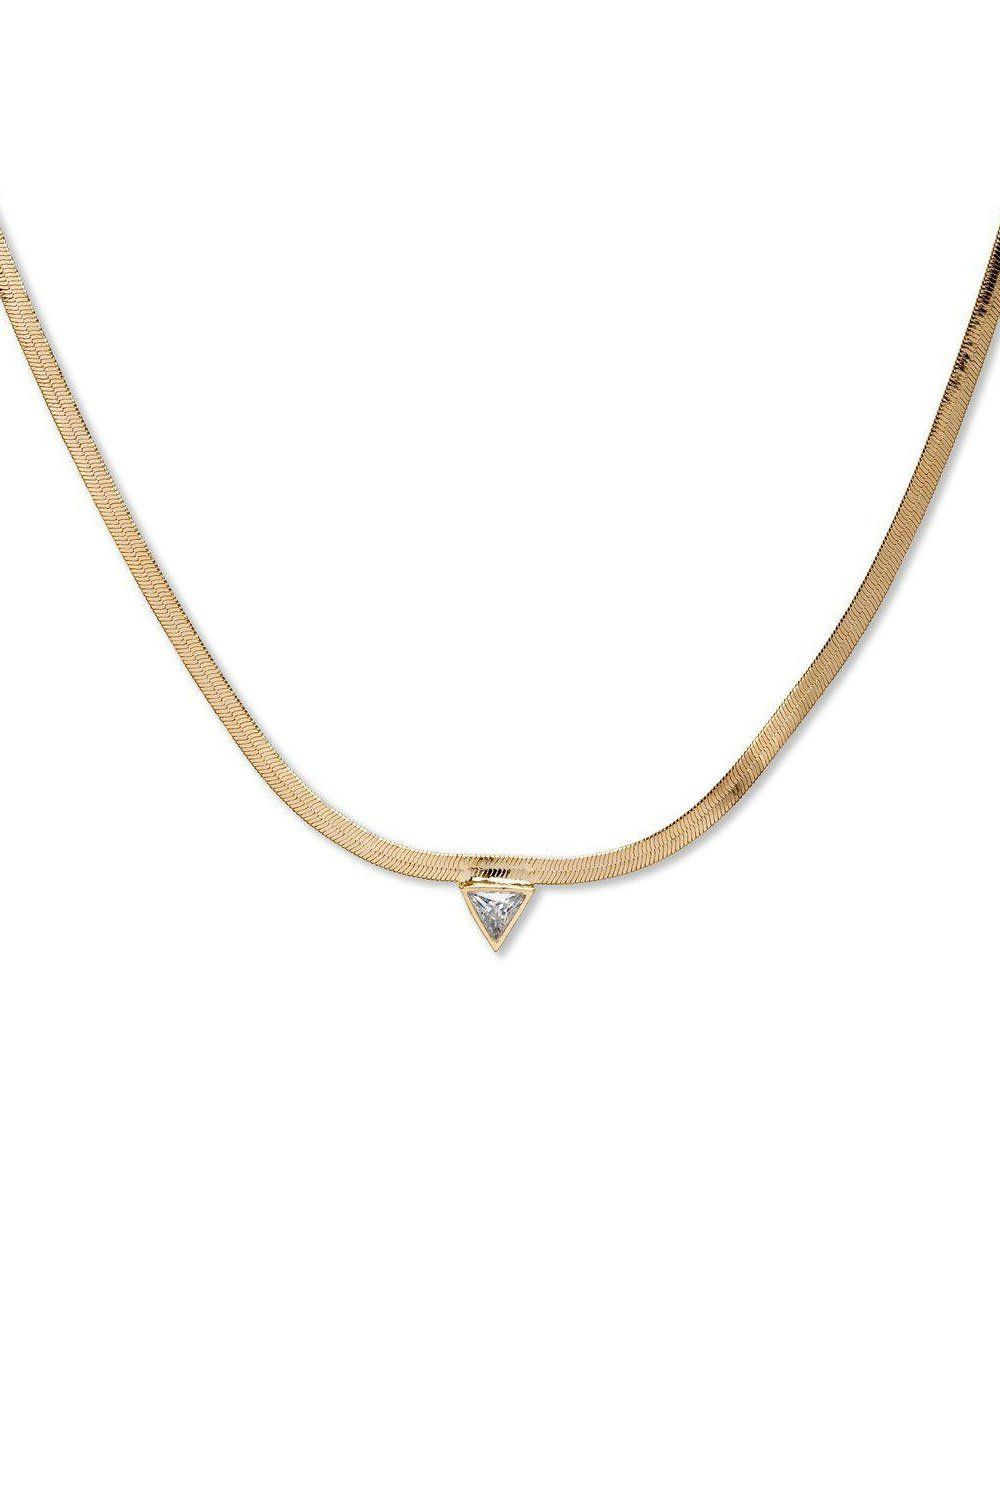 BRACHA | High Point Snake Chain Necklace